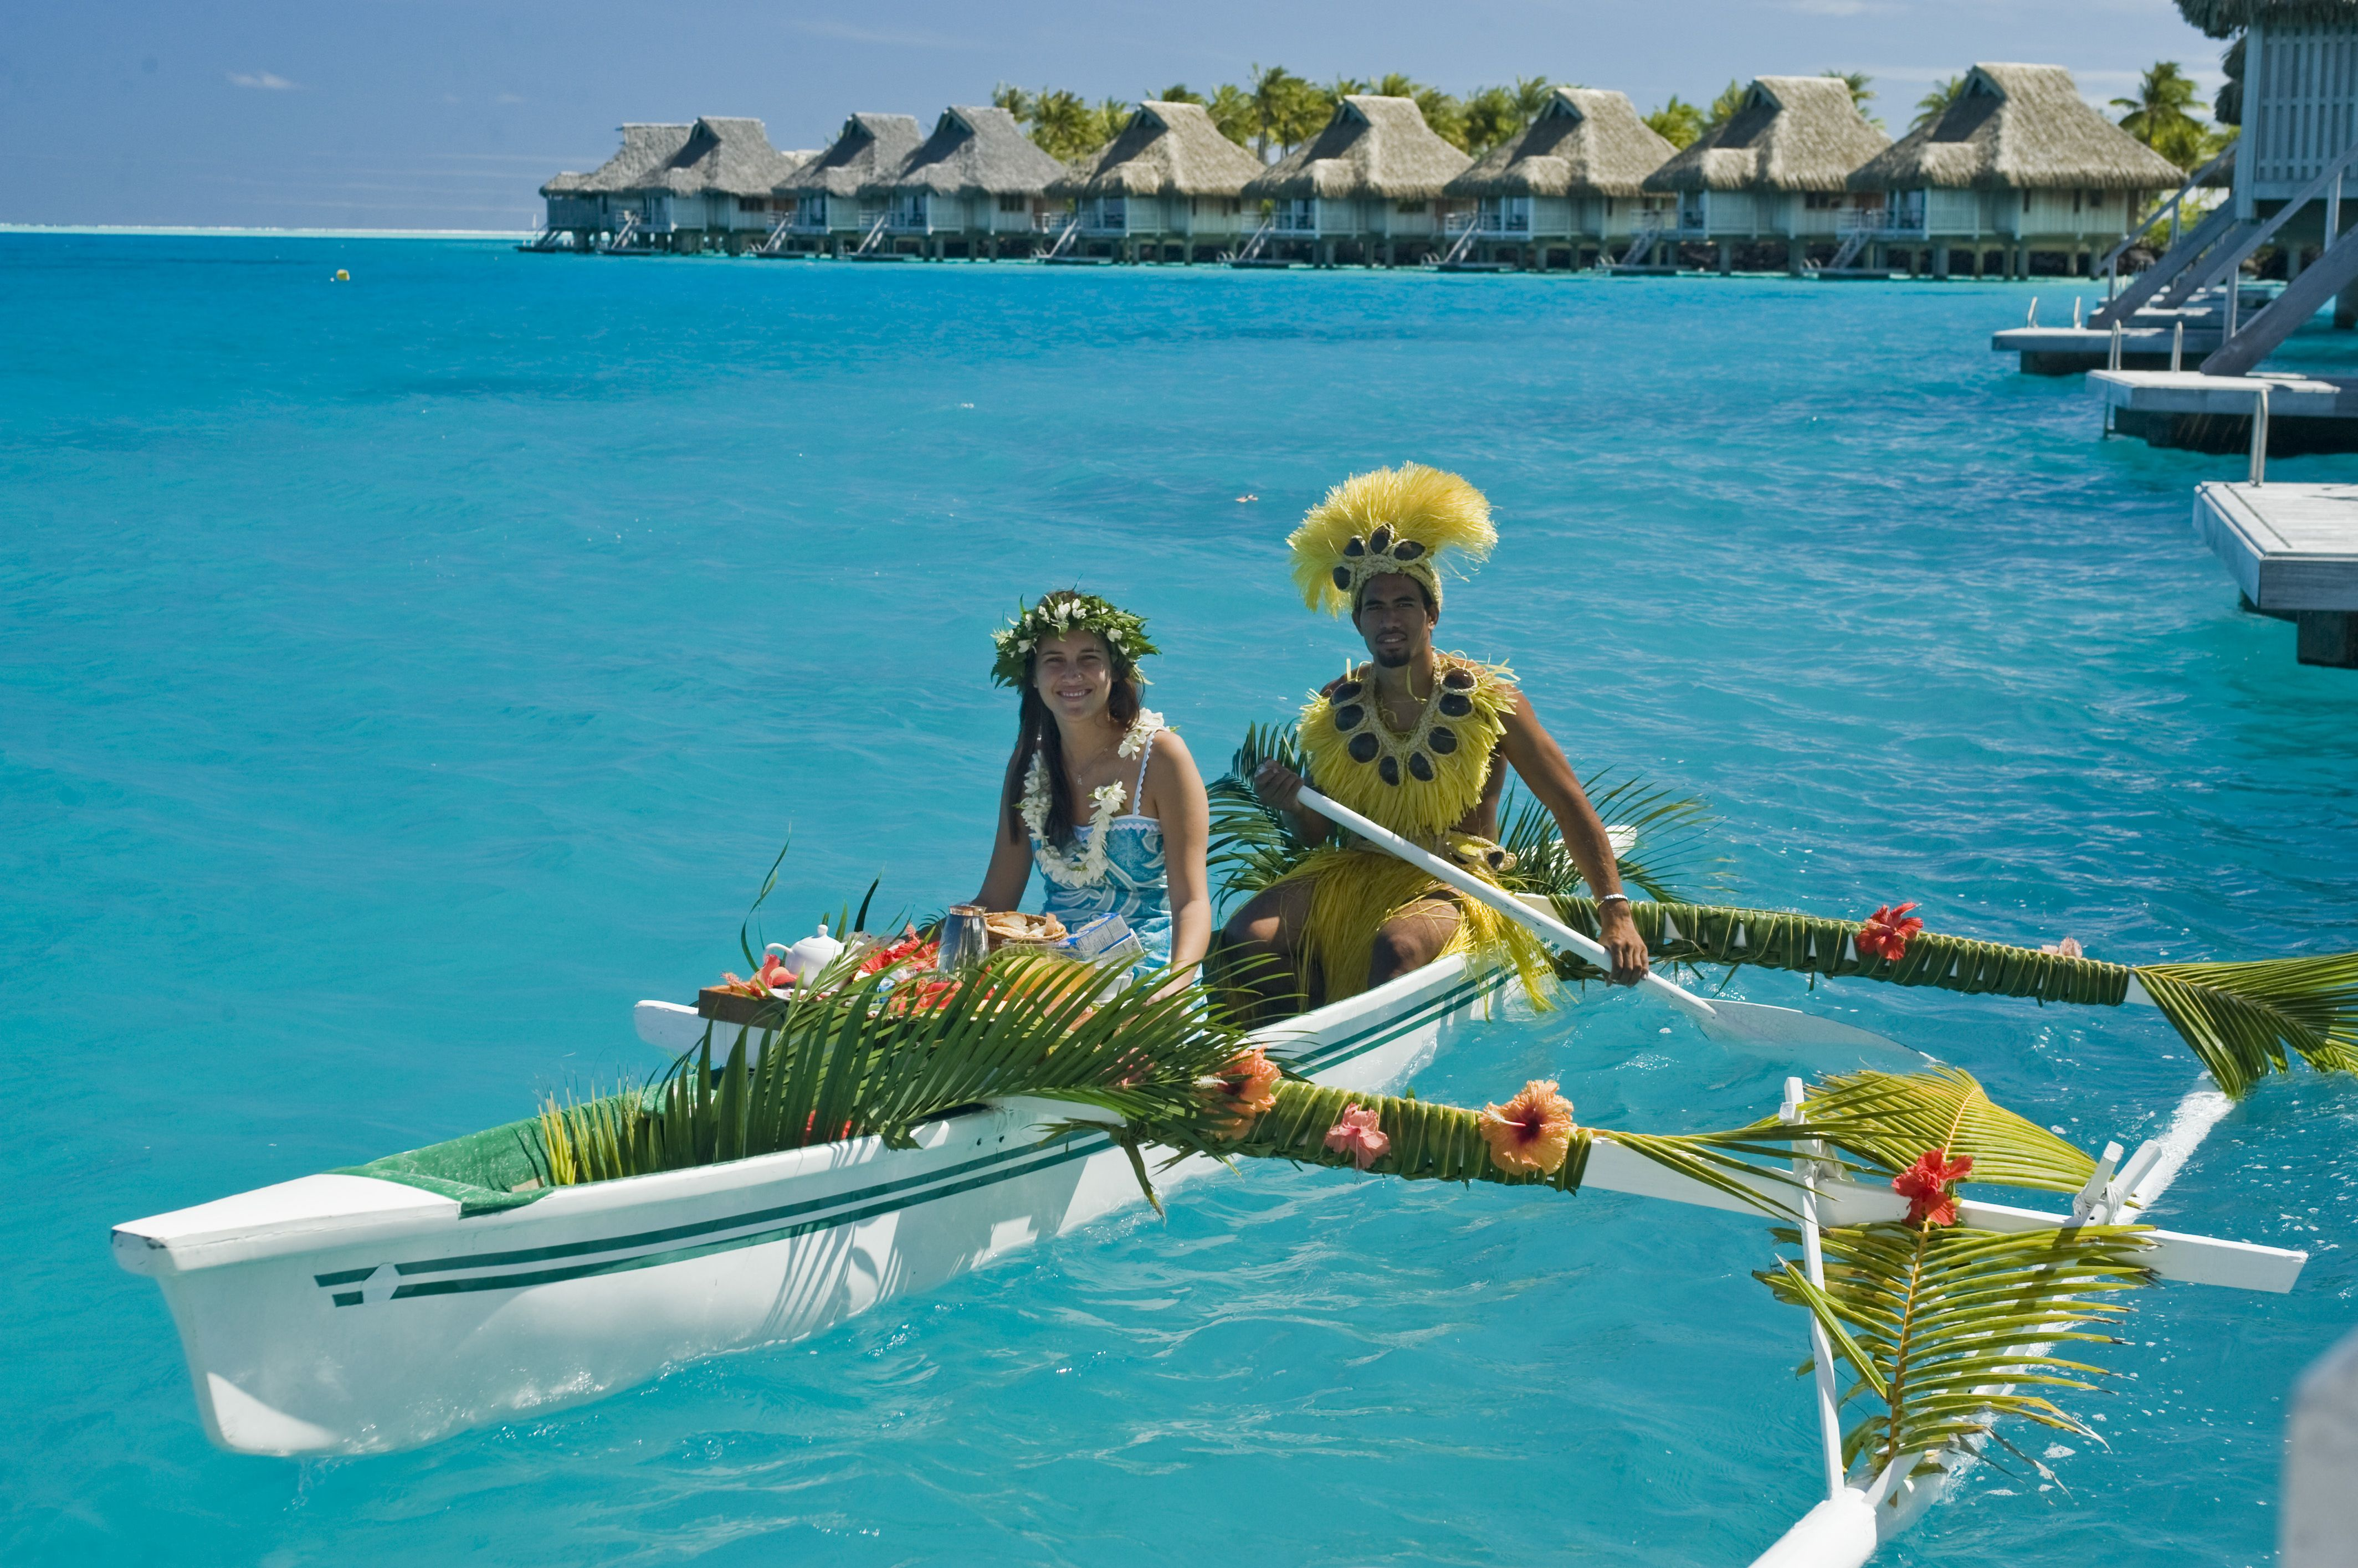 Canoe Breakfast Islands In The Sun With Images Bora Bora